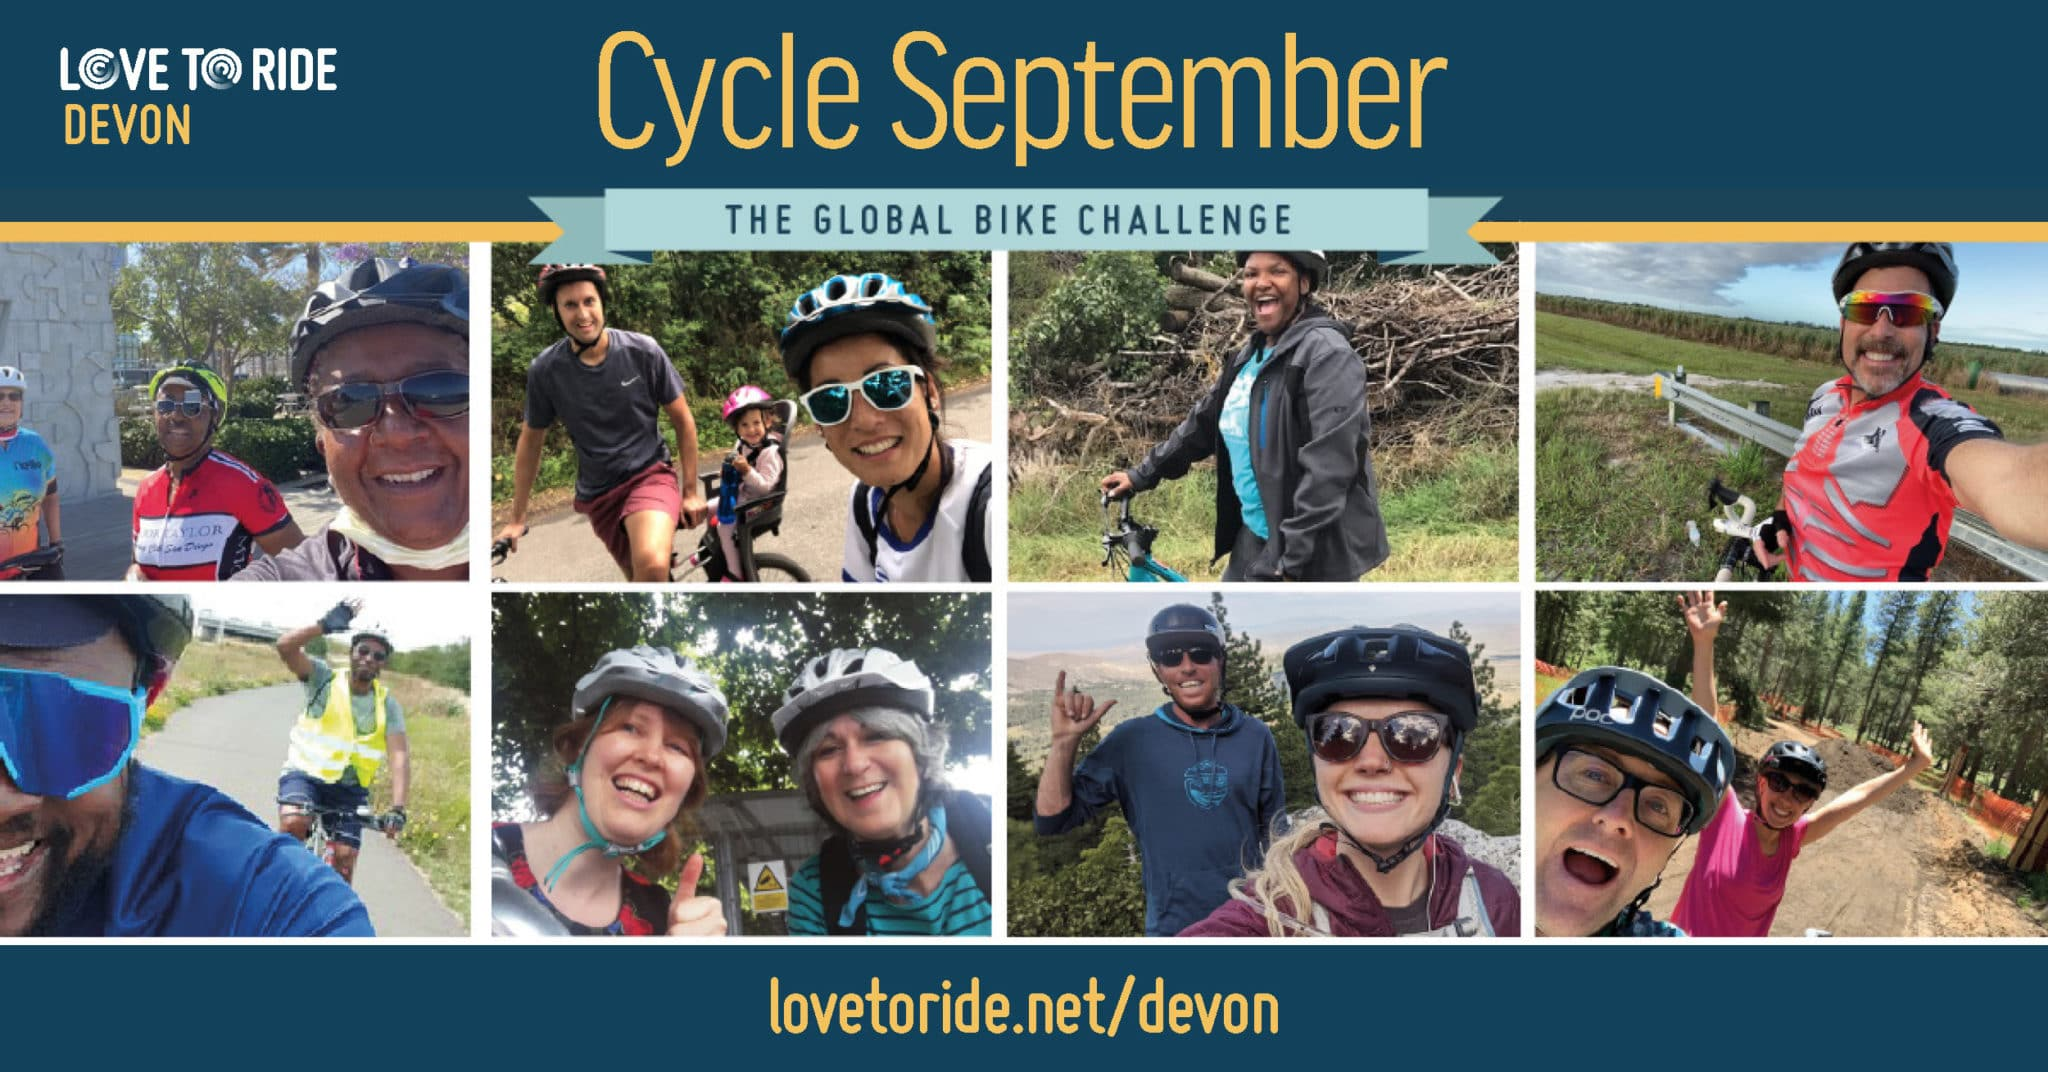 Cycle September logo with photos of cyclists and the text 'Love to Ride Devon, Cycle September The Global Bike Challenge, lovetoride.net/devon'